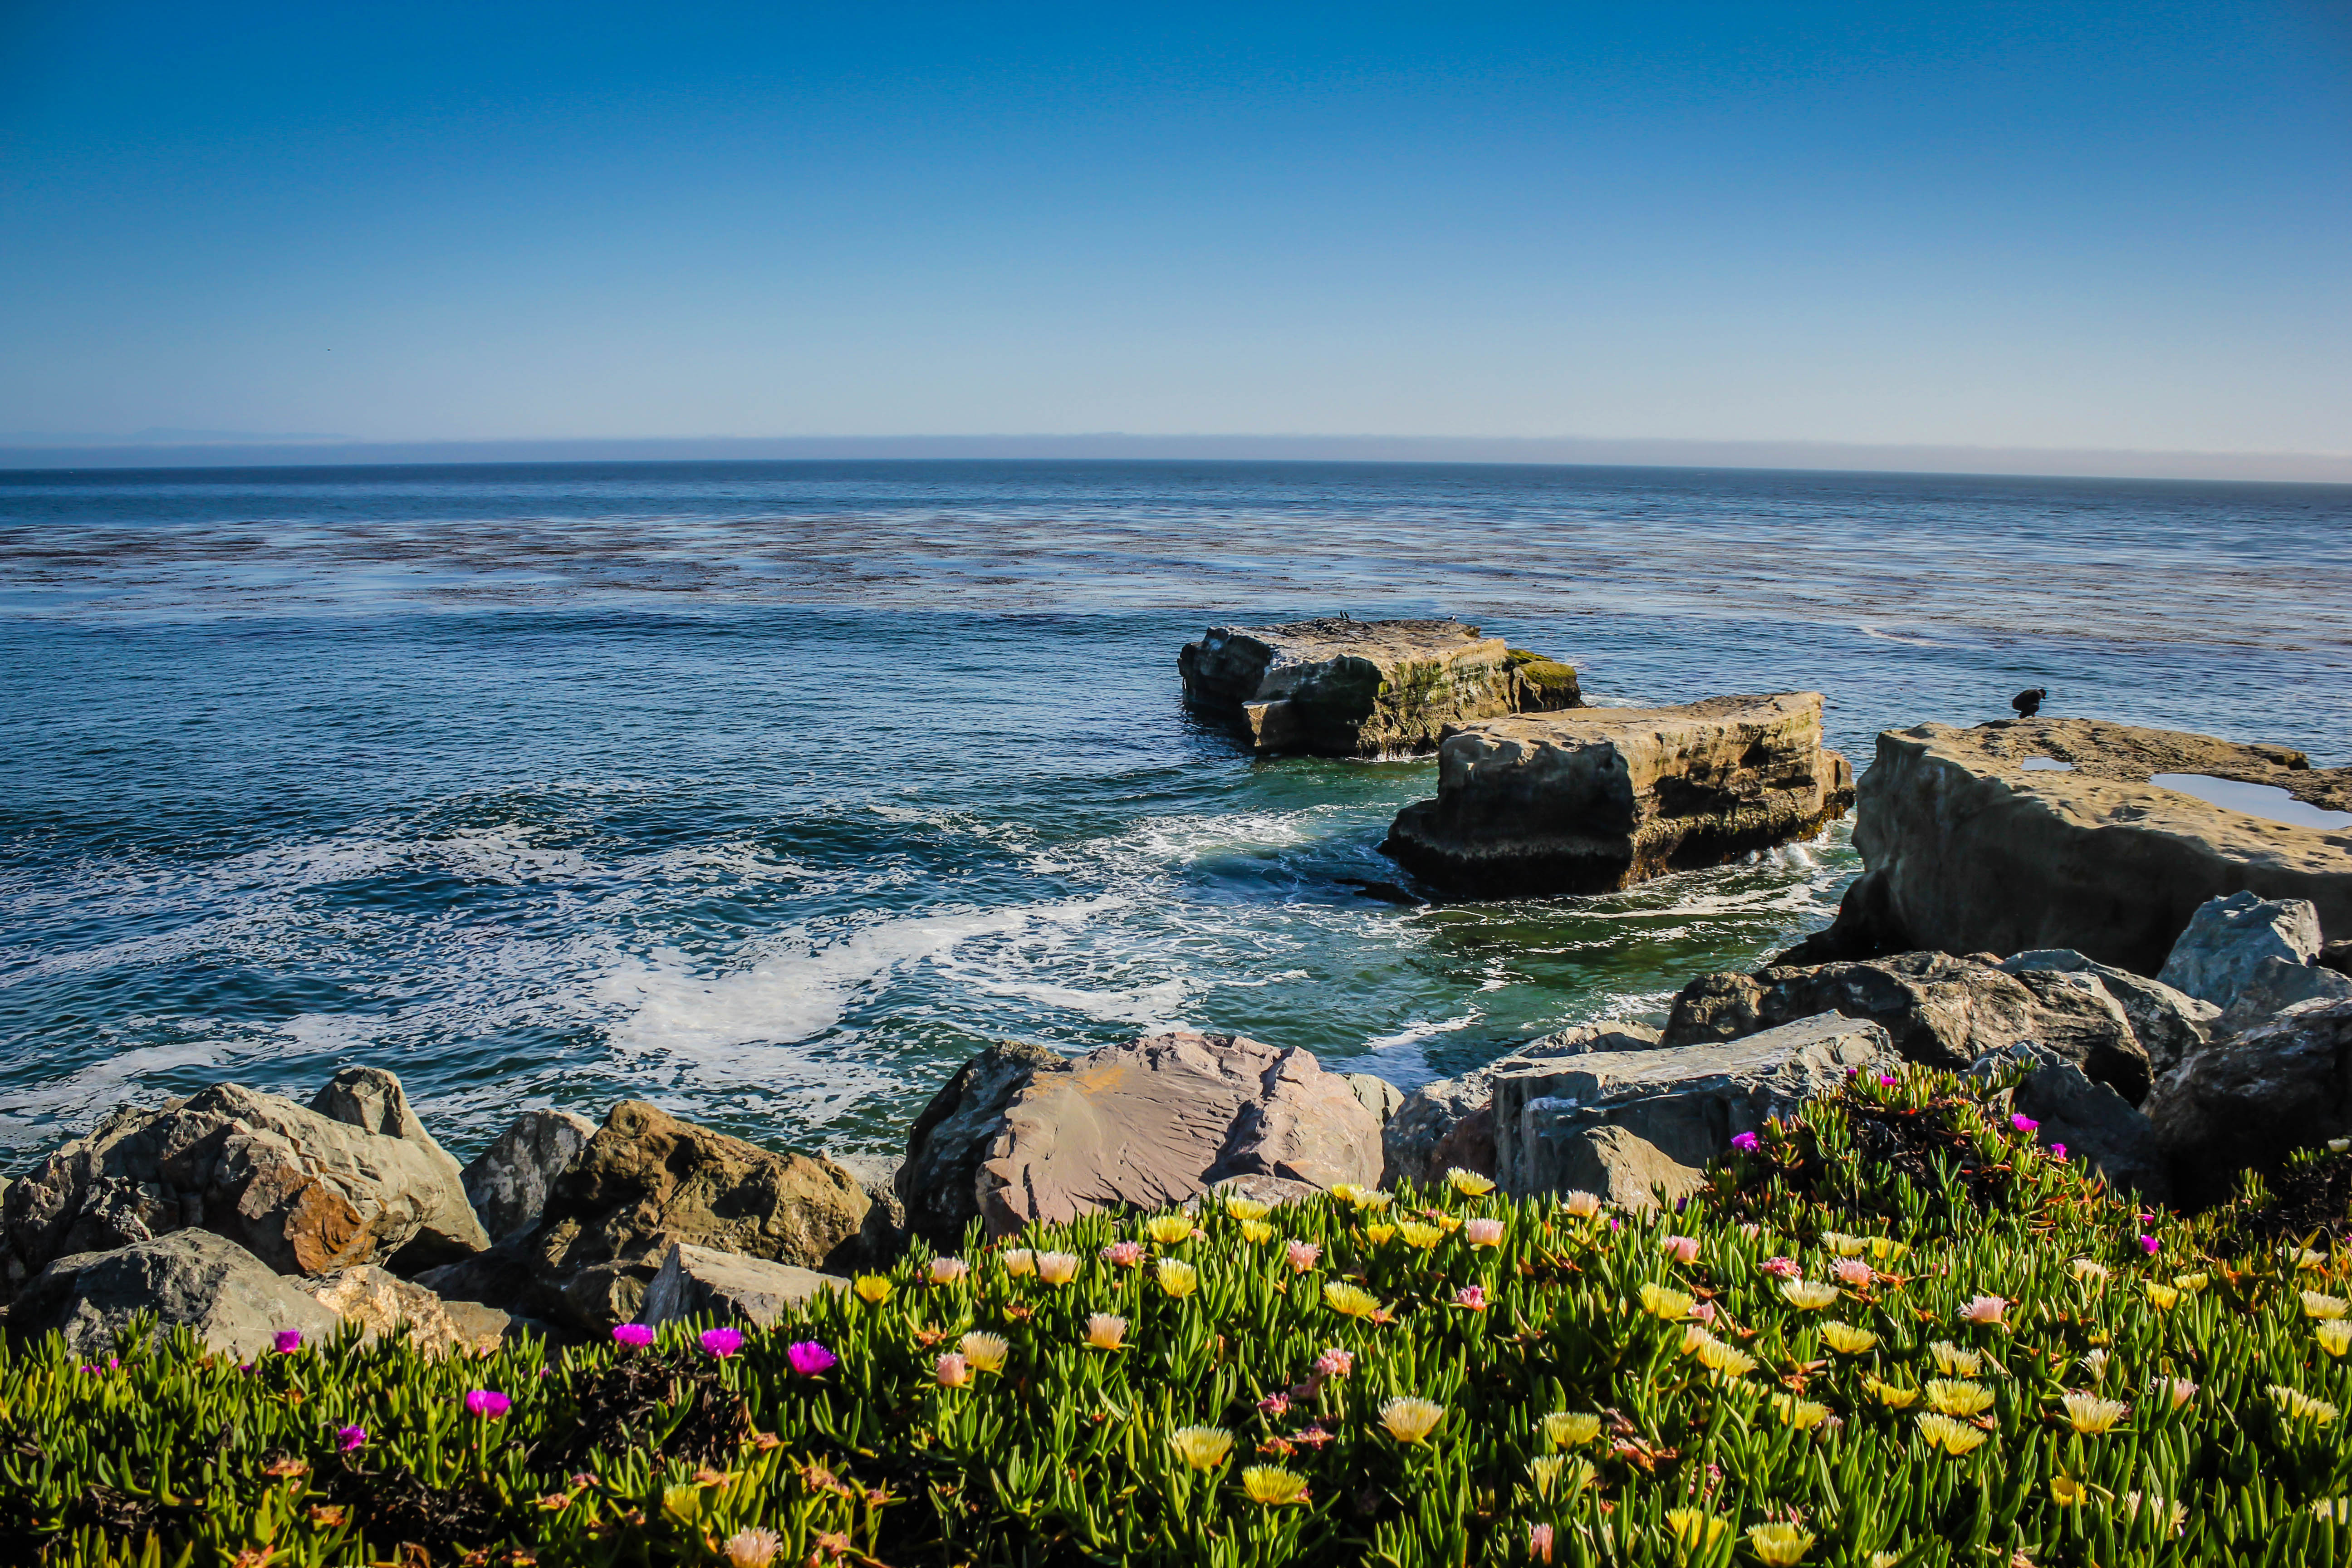 Santa Cruz ocean view wallpaperjpg 5184x3456